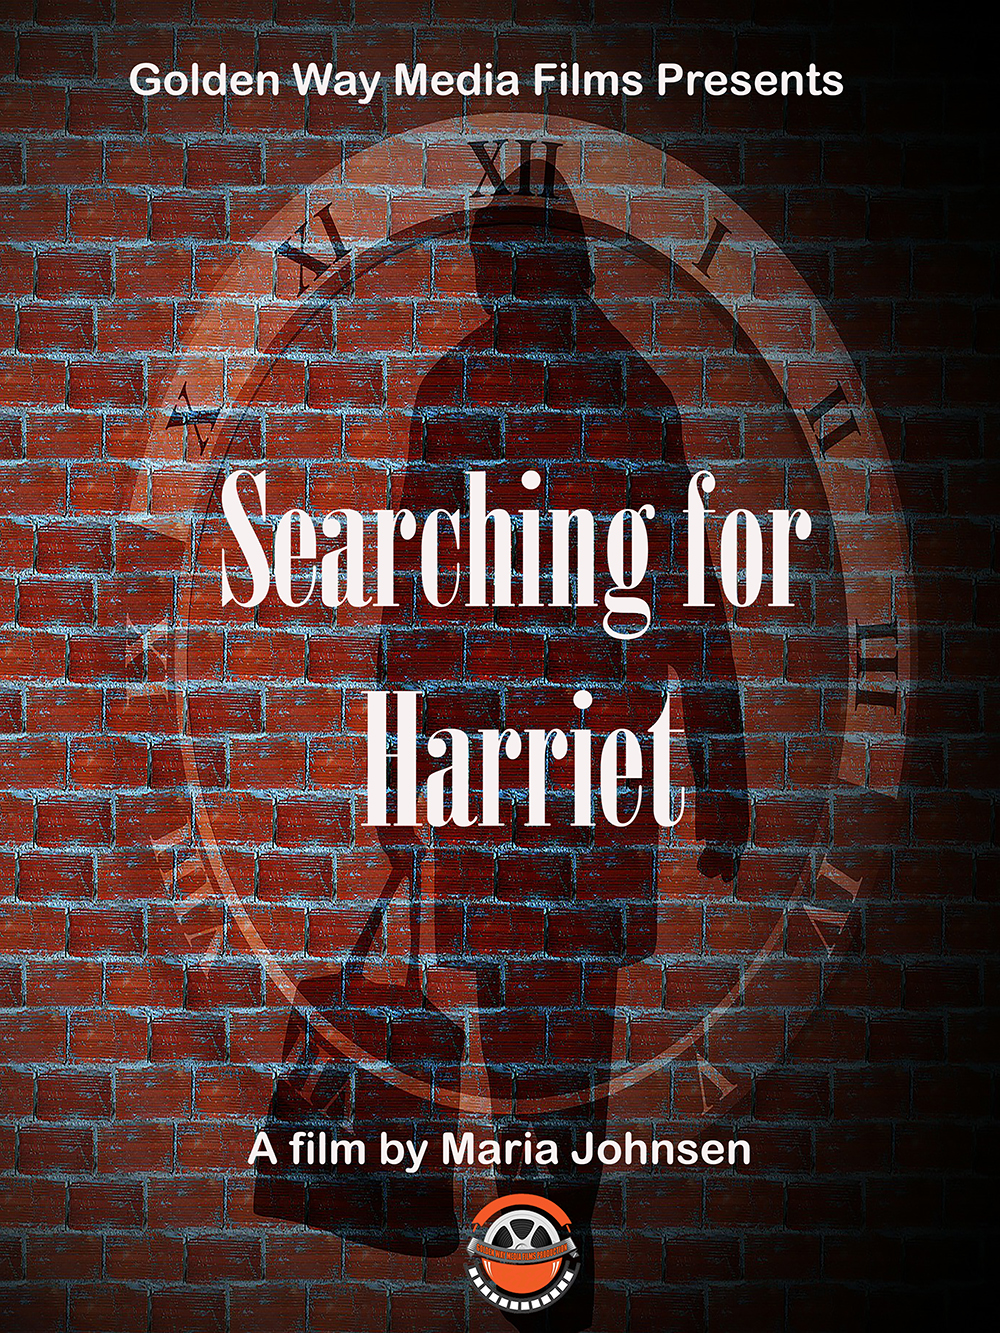 Maria Johnsen Announced A New Film Called Searching For Harriet!